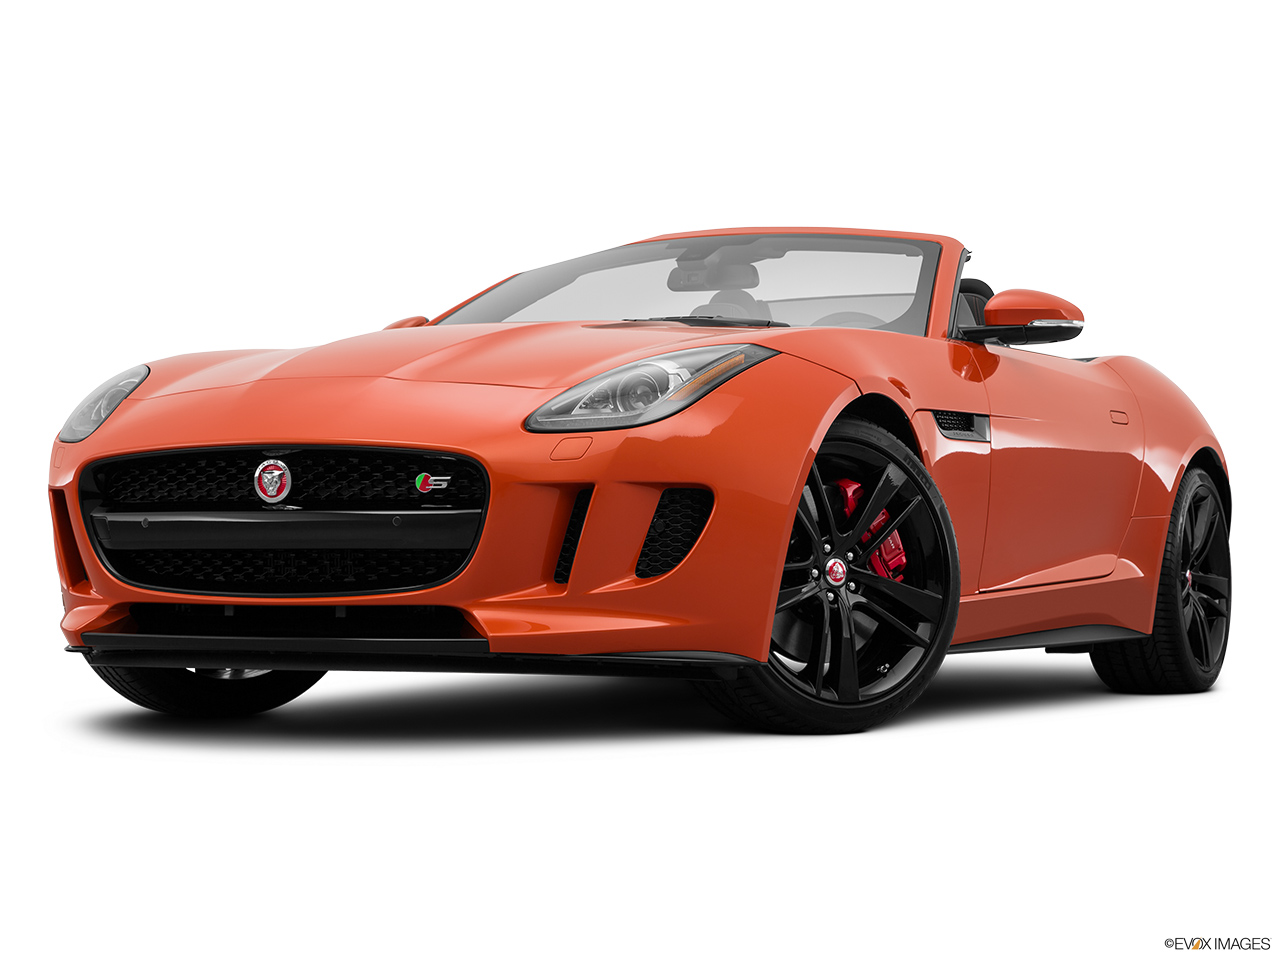 2015 Jaguar F-Type Convertible V8 S Front angle view, low wide perspective.